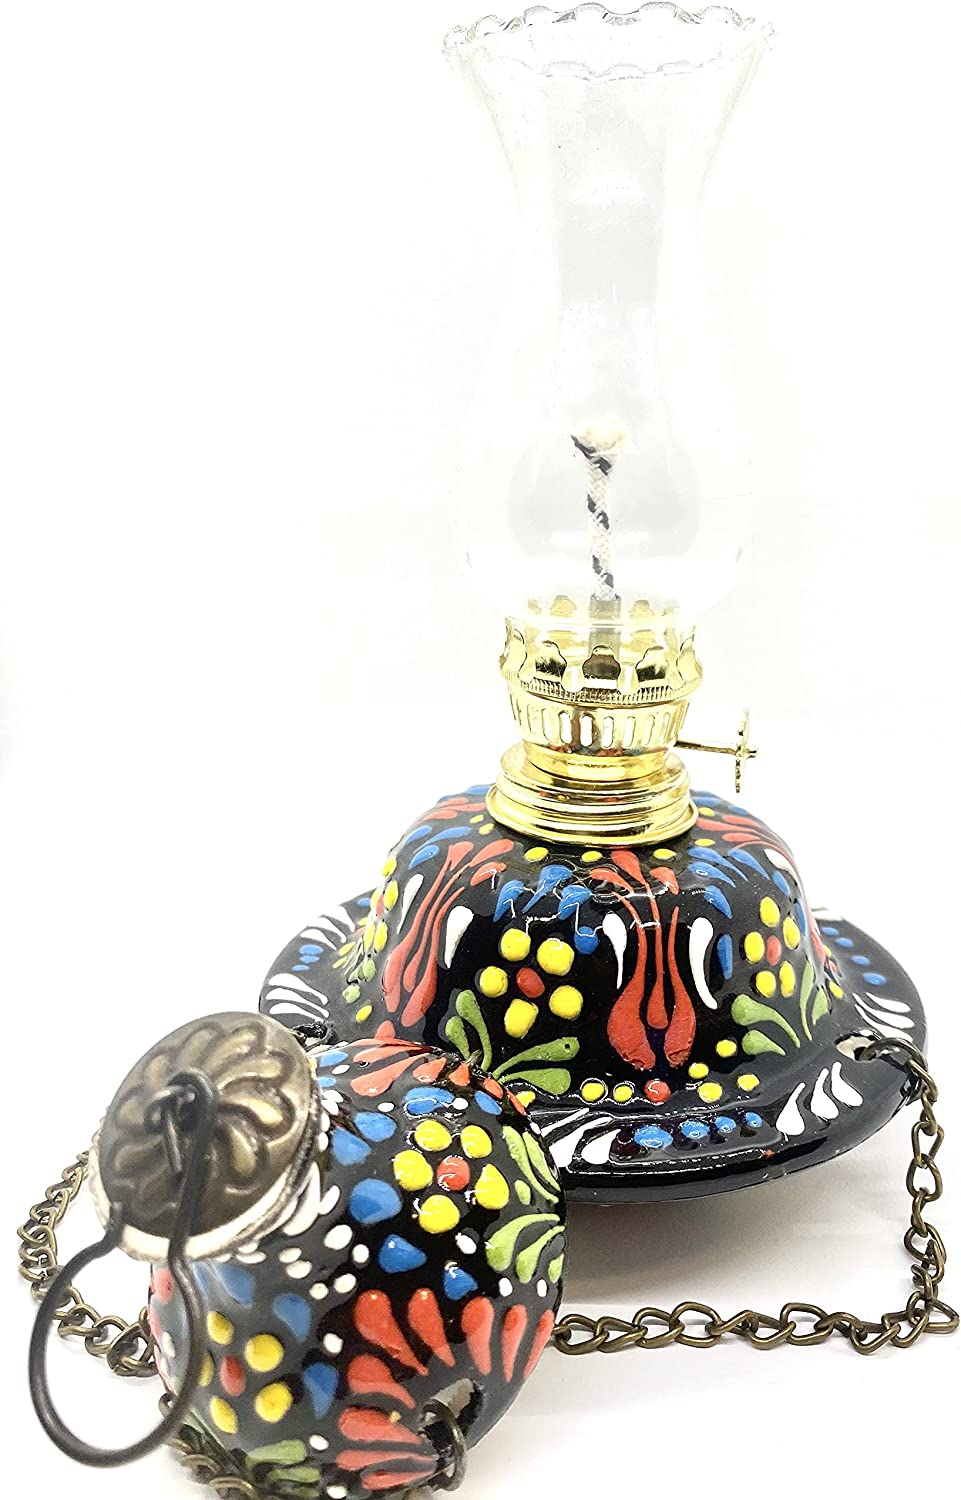 Turkish Style Pendulum Oil Lamp Tabletop D Sales 2021 autumn and winter new for sale Handmade Ceramic